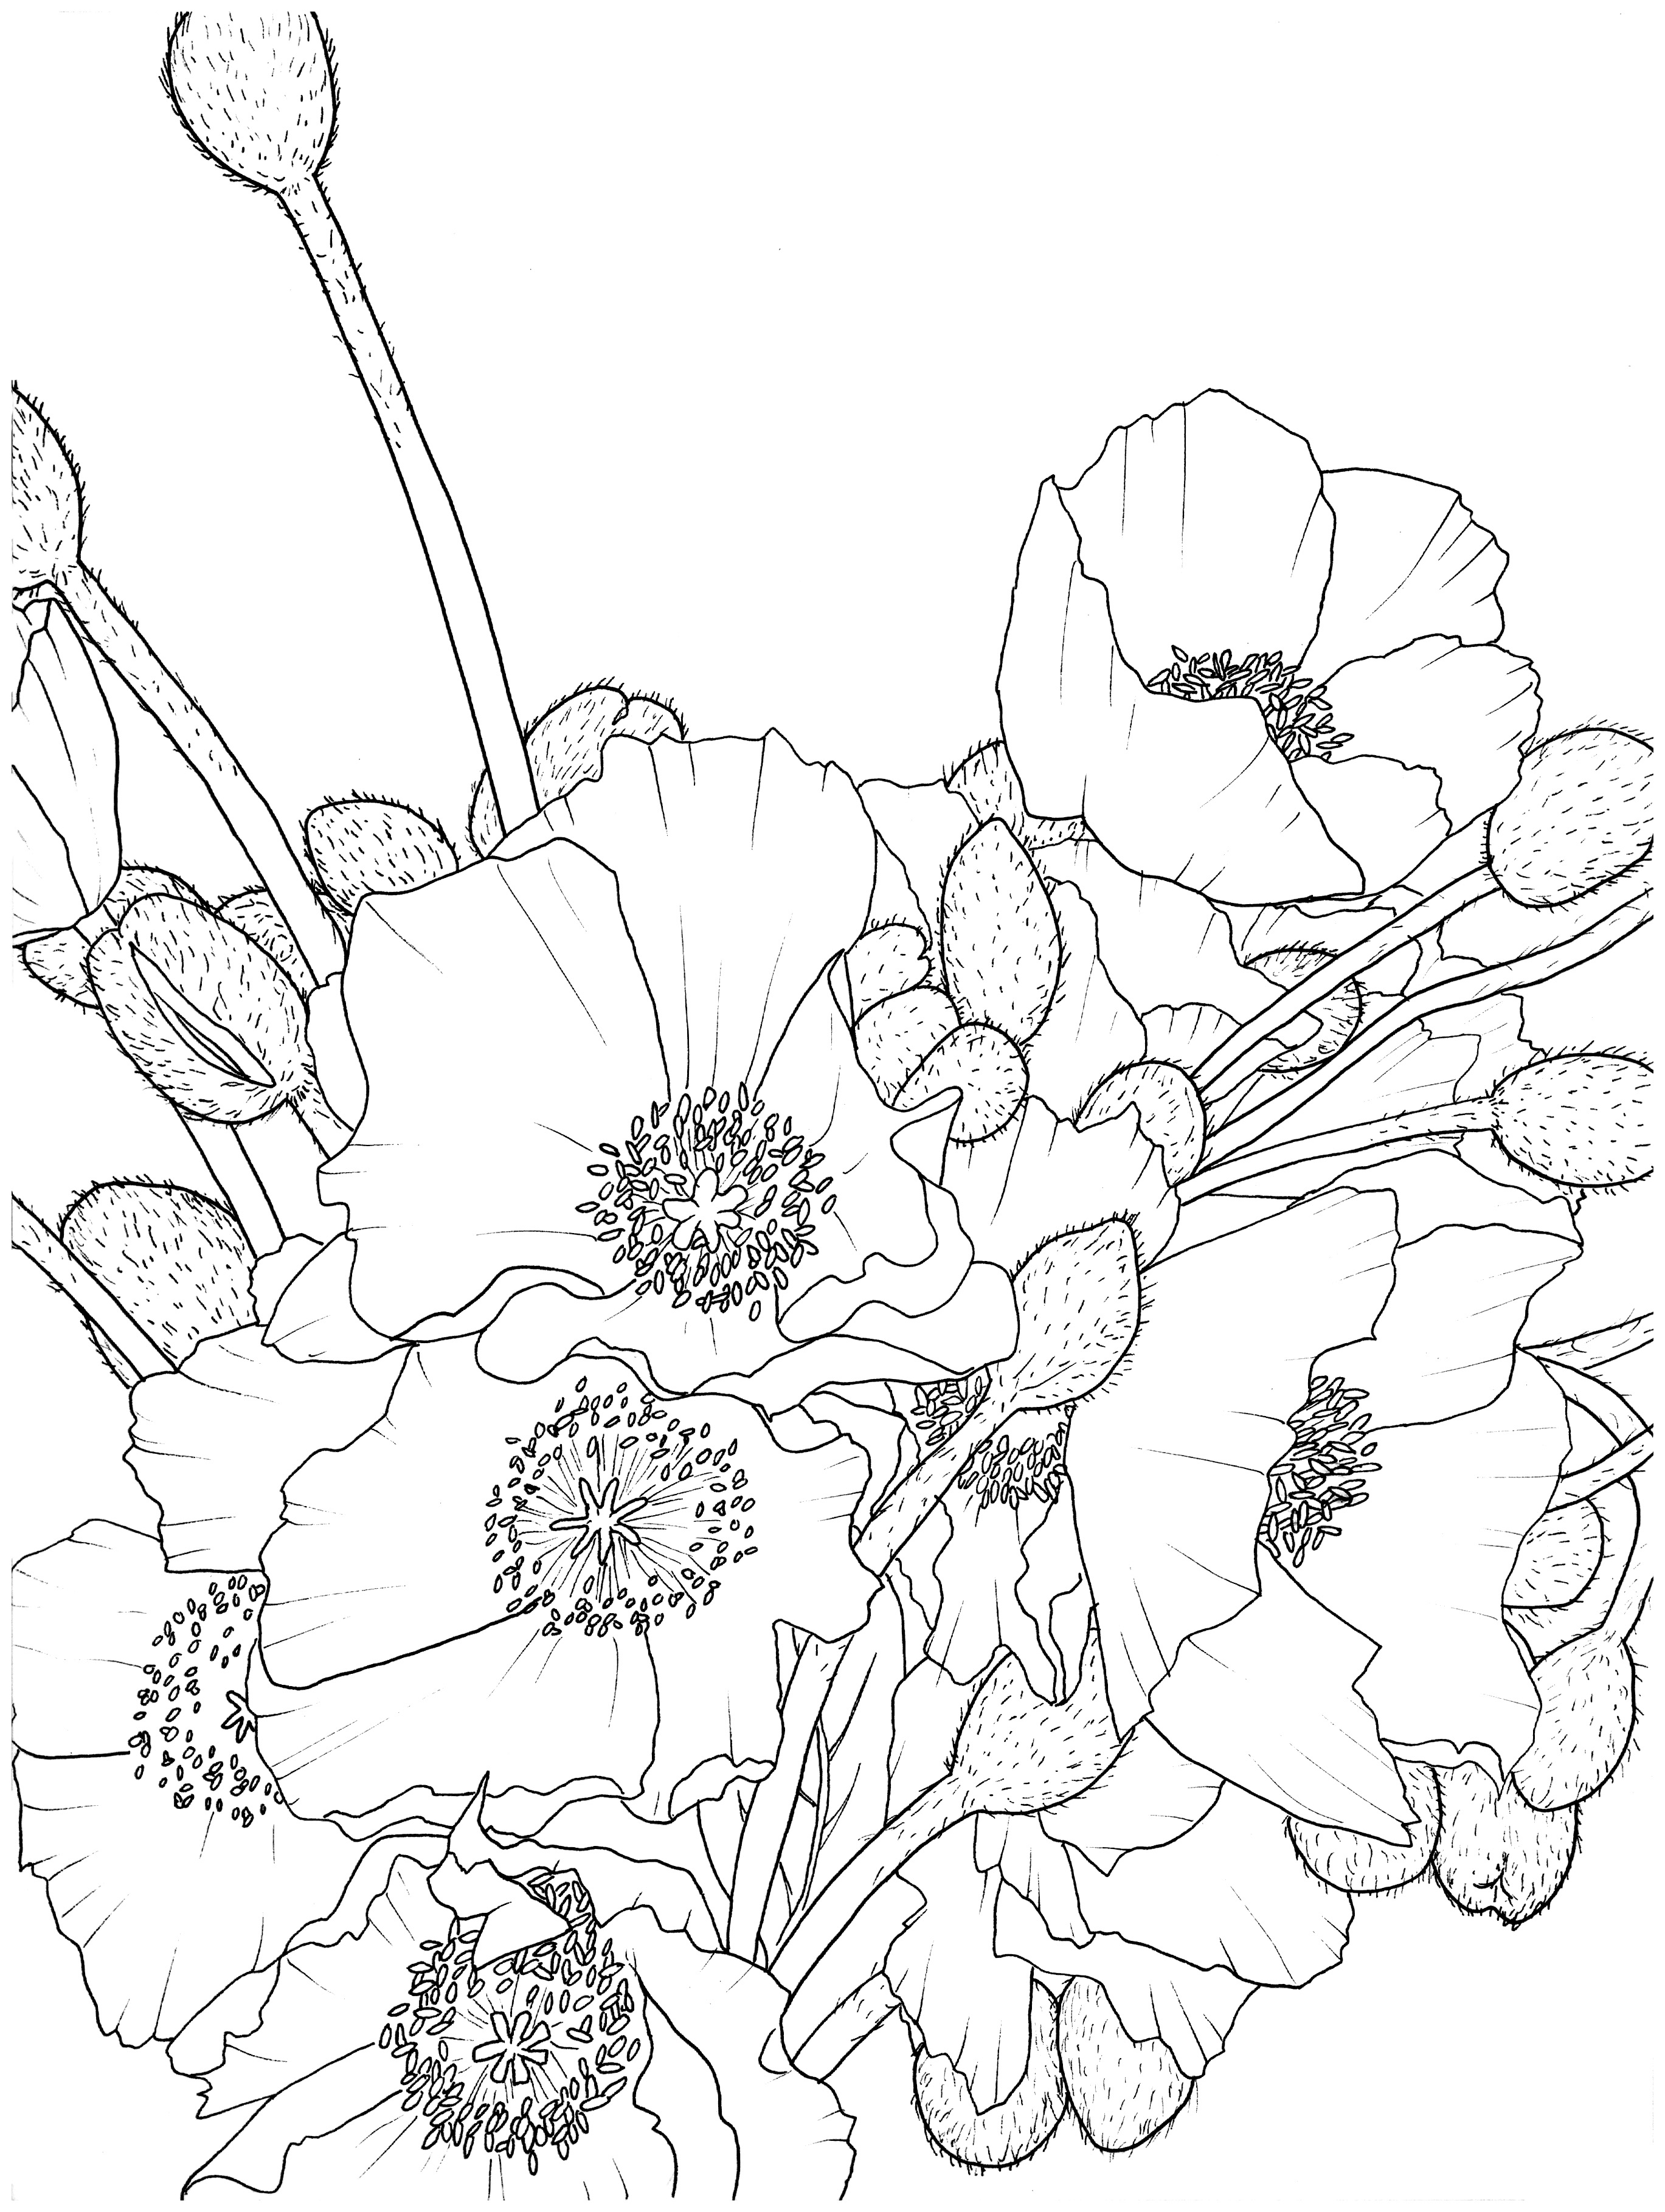 Poppies_and_Bulbs